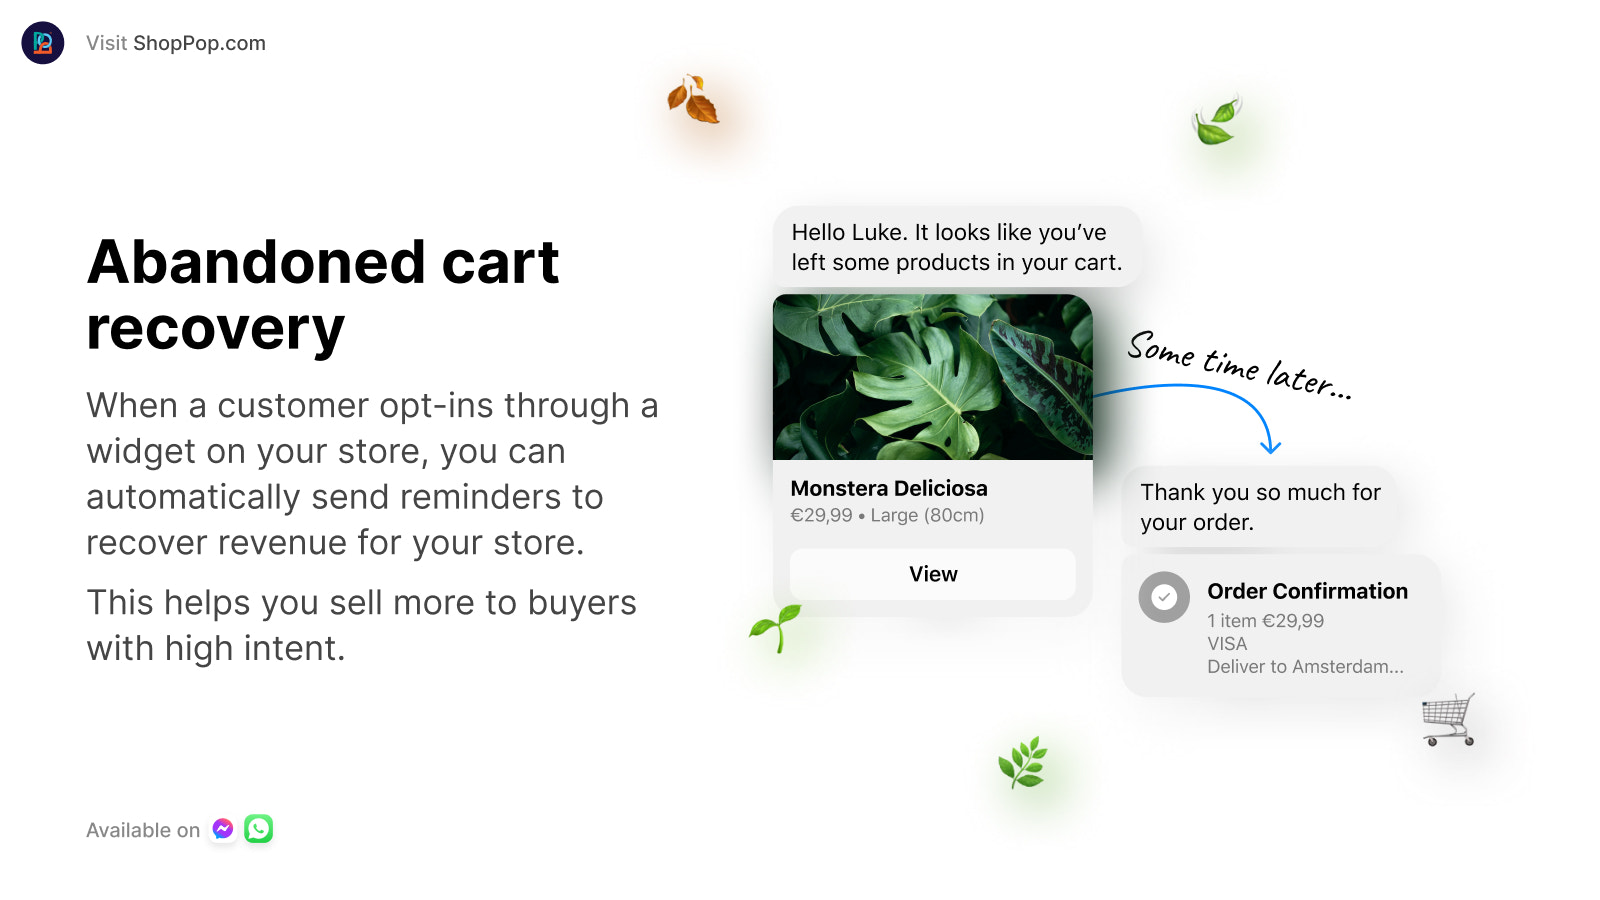 Recover abandoned carts from customers and increase sales